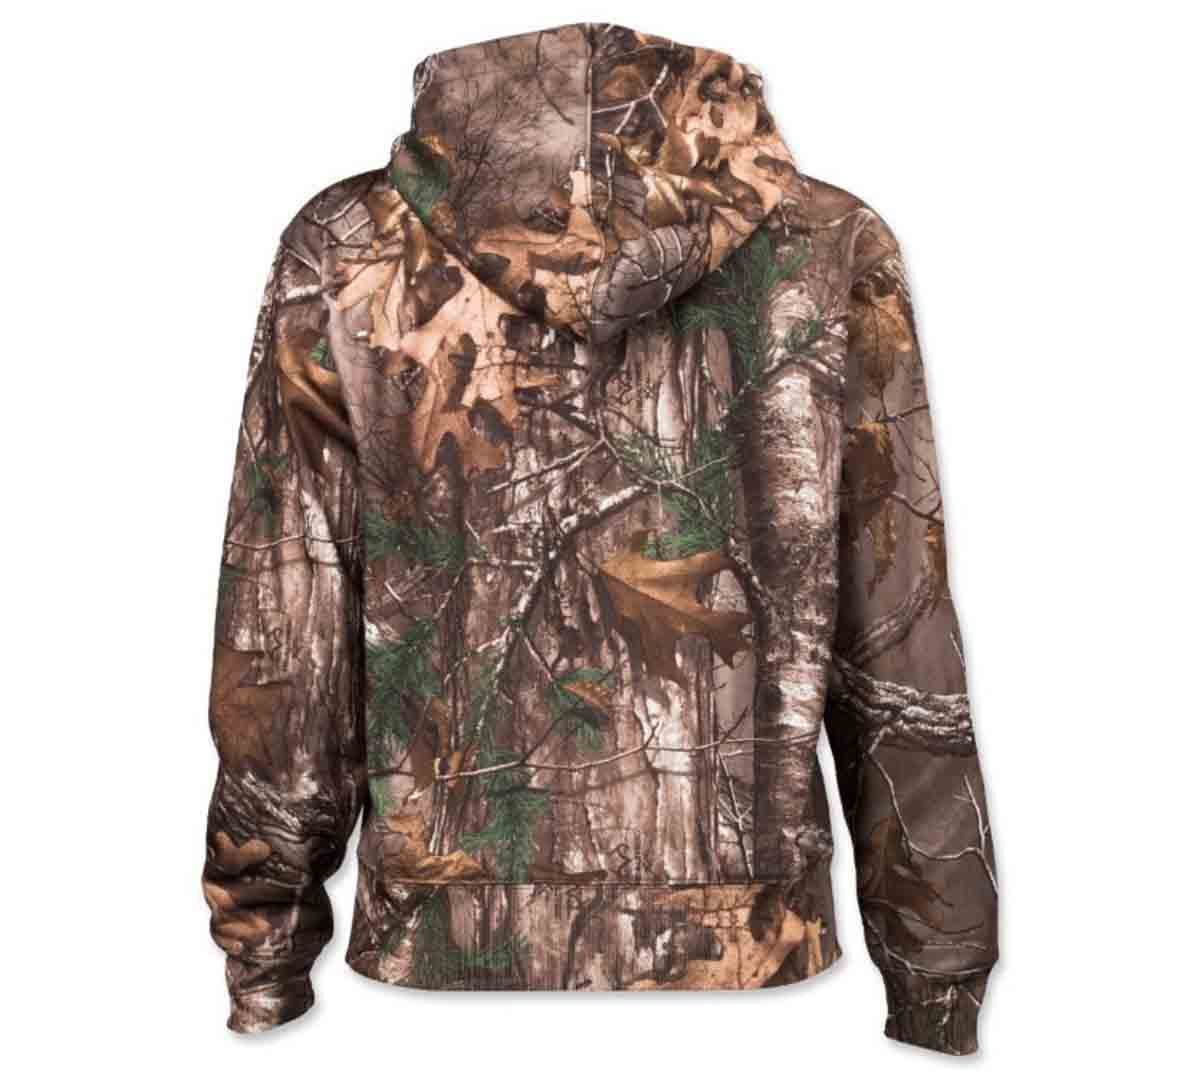 Browning Performance Hoodie For Her, Realtree AP Xtra_2.jpg